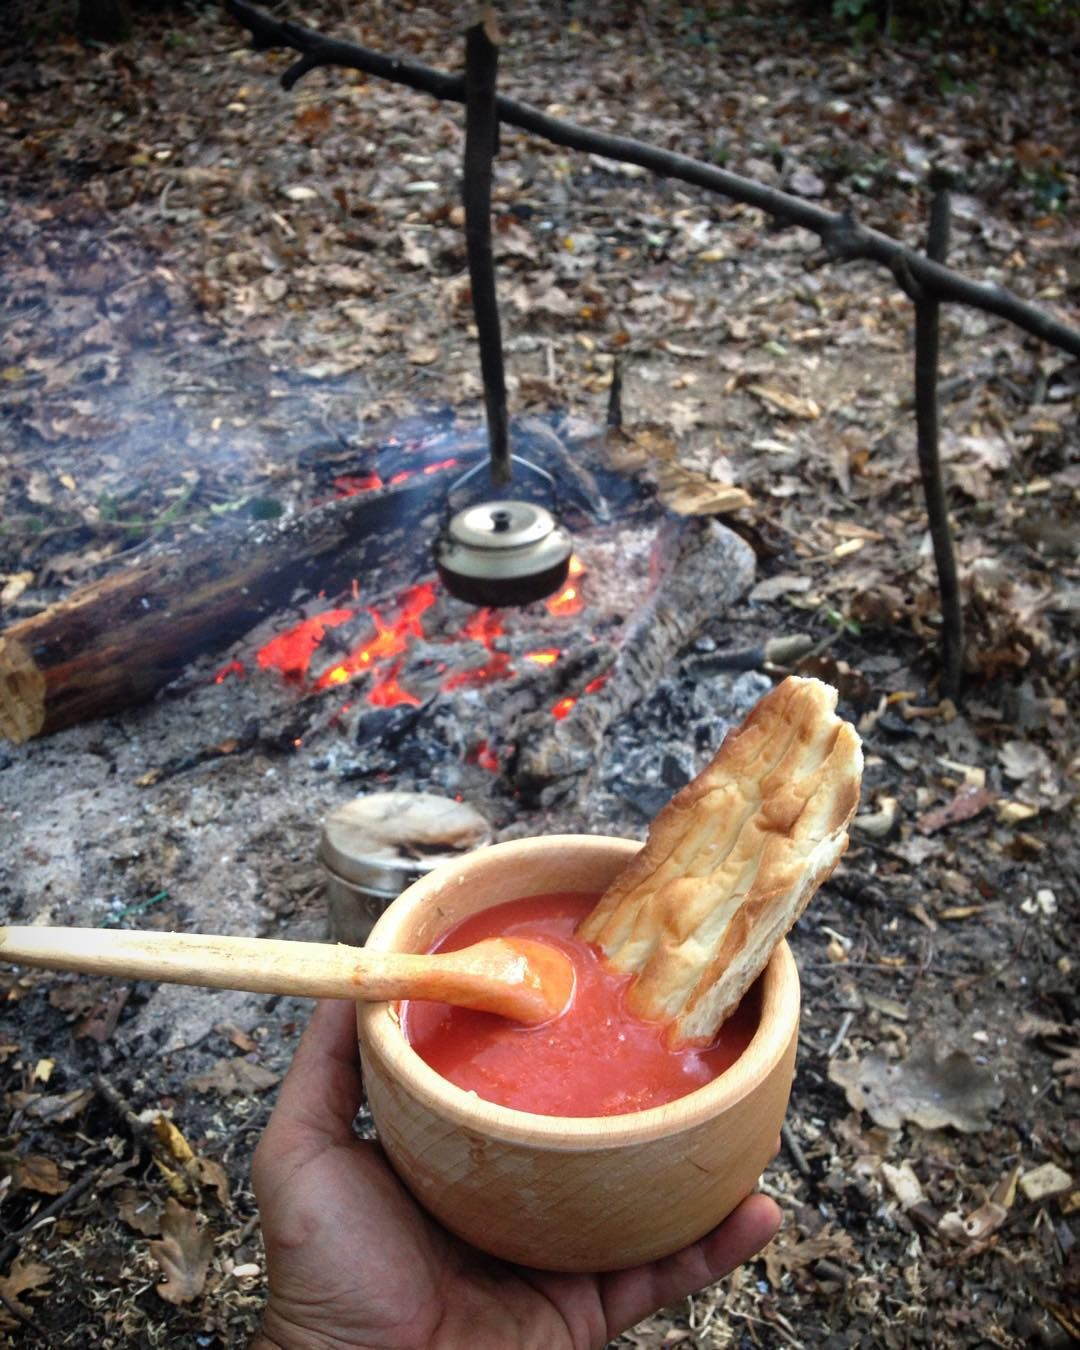 Soup and bread by the campfire